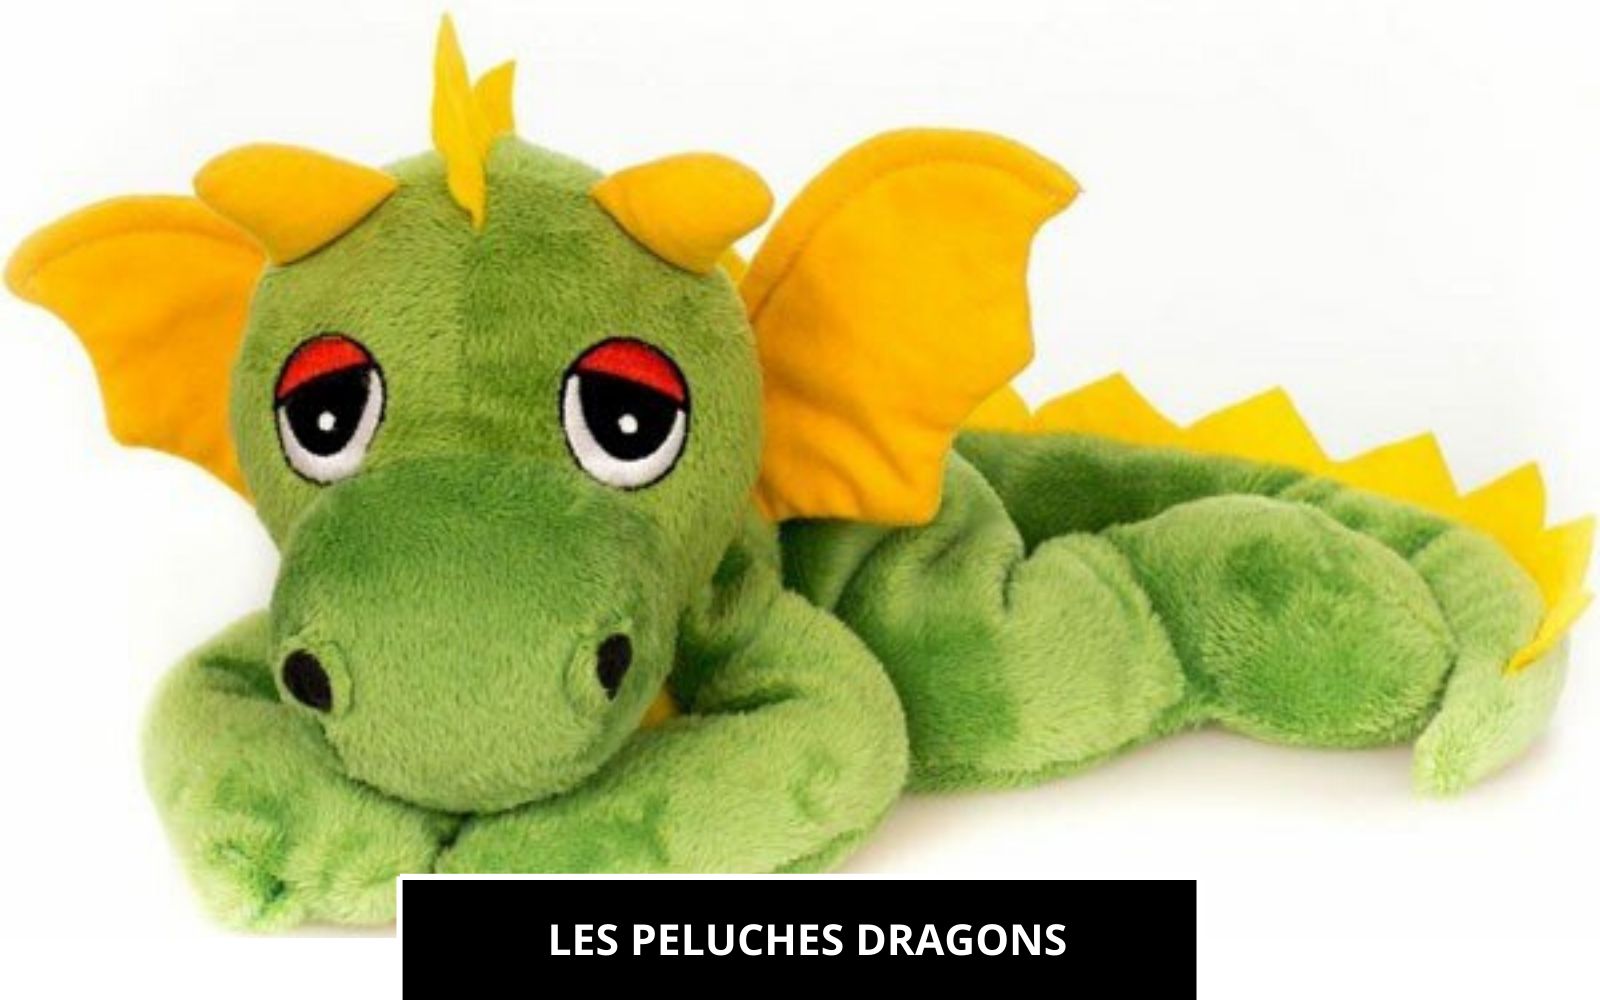 Les Peluches Dragons